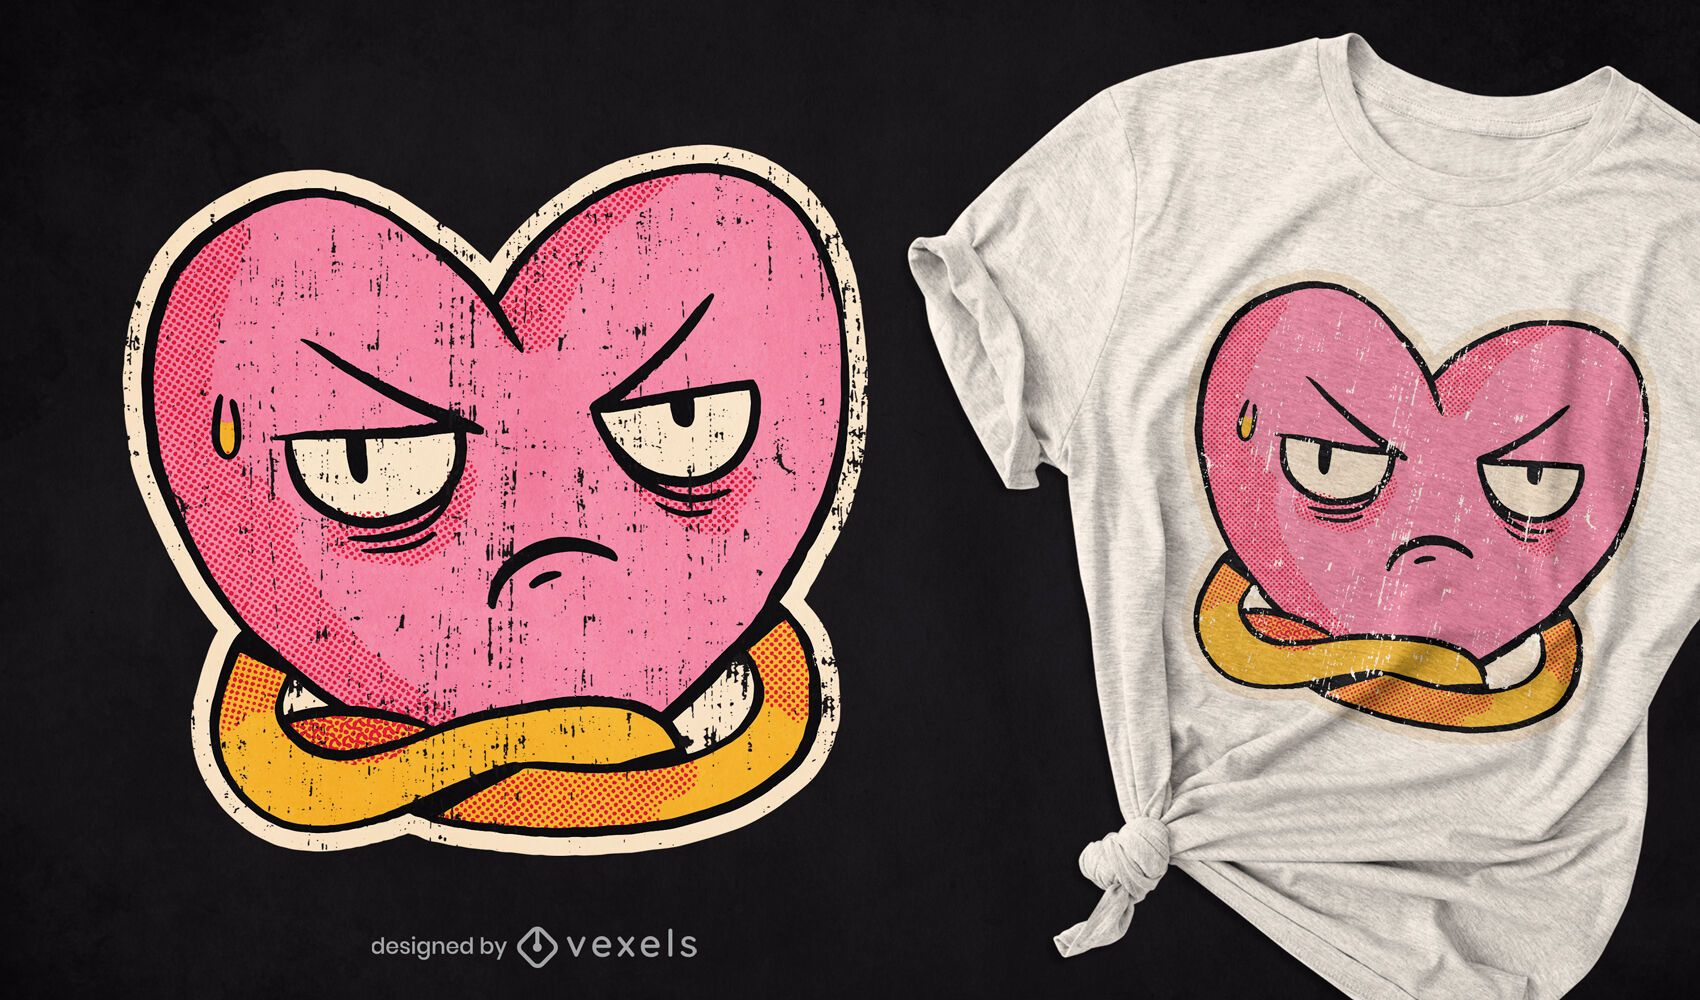 Disgusted heart t-shirt design